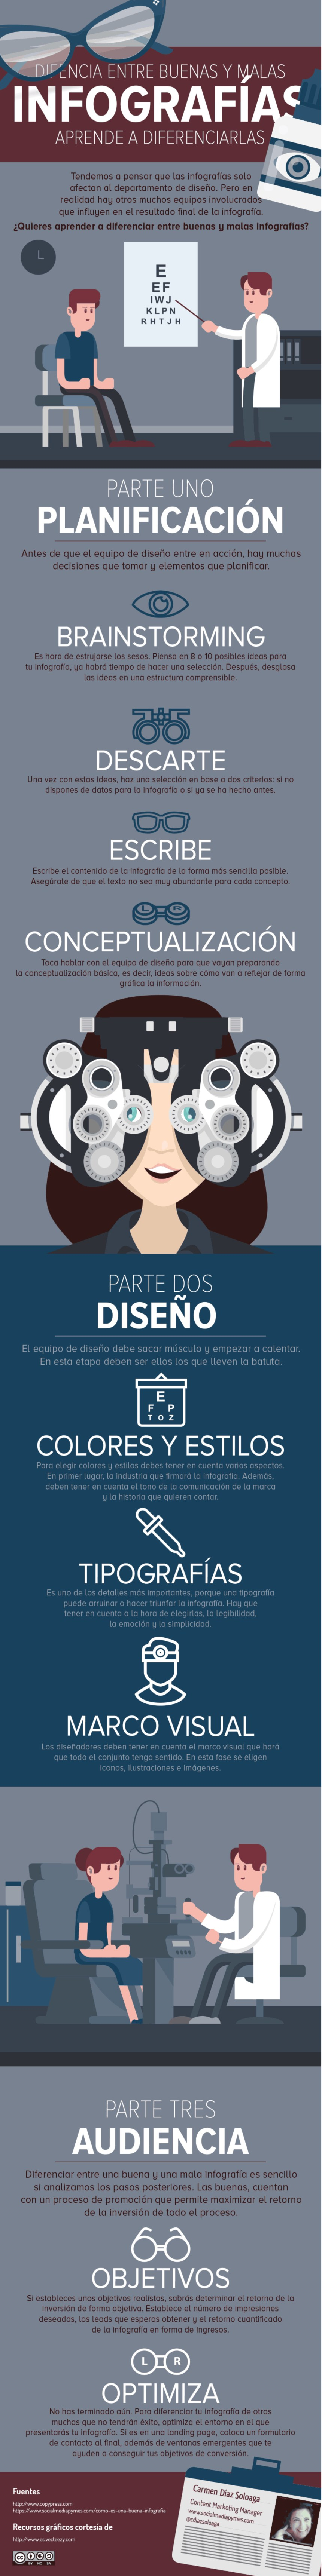 Diferencias entre buenas y malas infografías #infografia #infographic #marketing